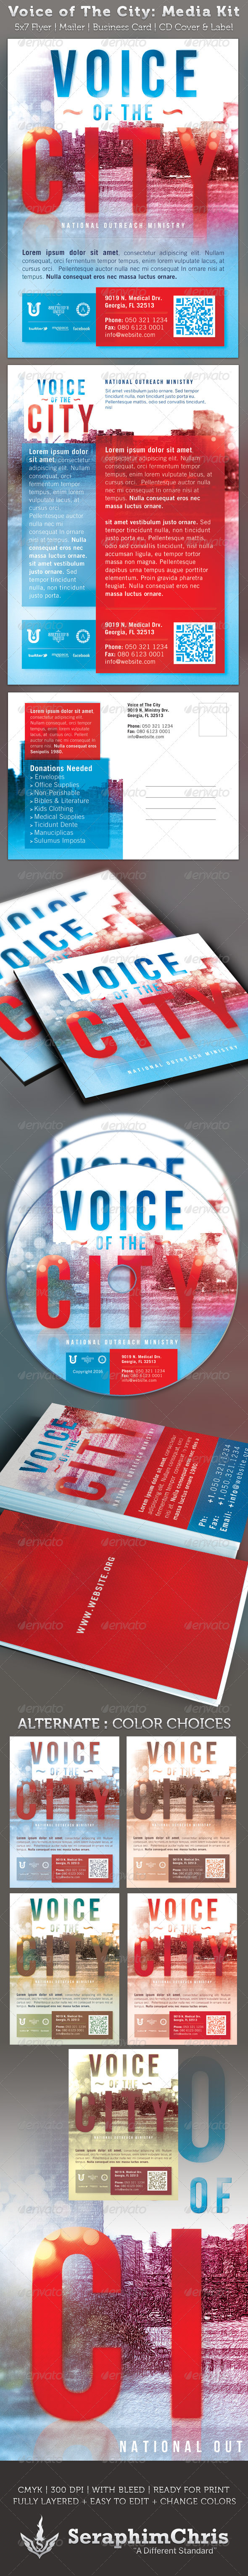 GraphicRiver Voice of The City Church Charity Media Kit 2283215